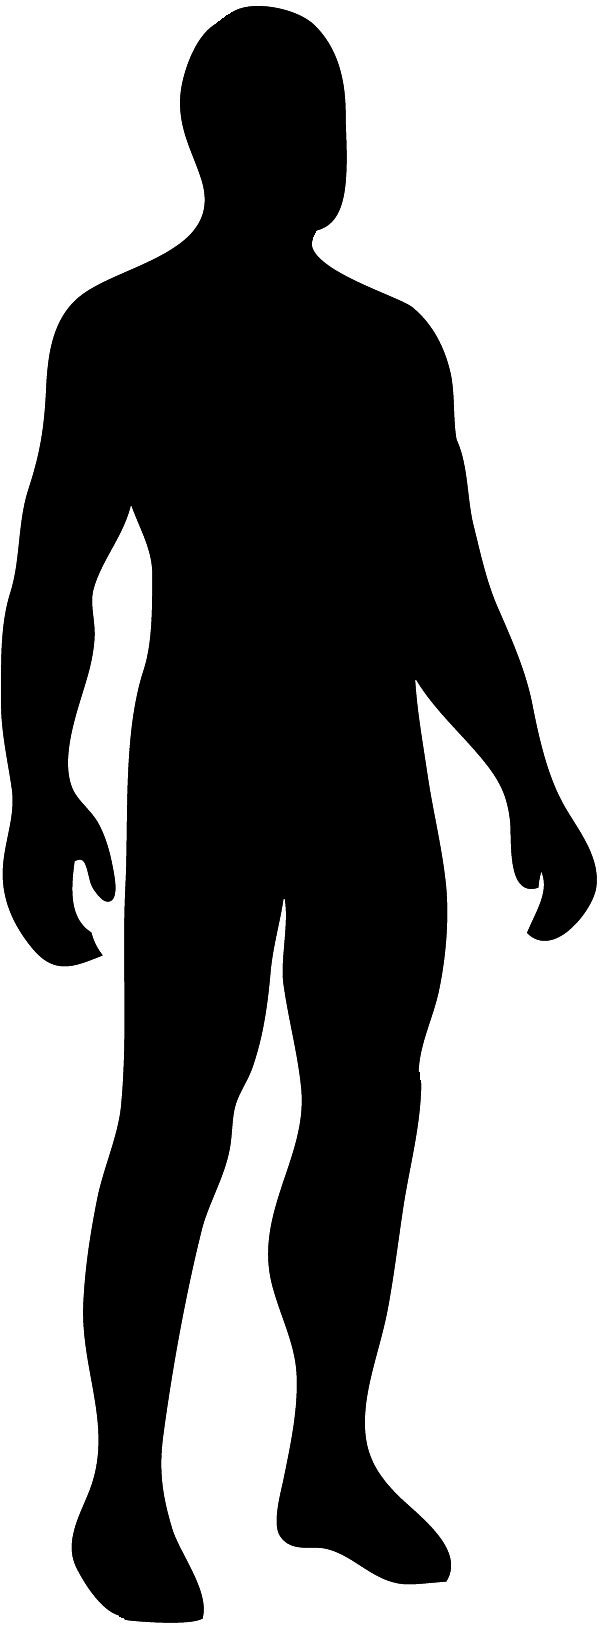 Body Outline Clip Art - PNG Human Body Outline